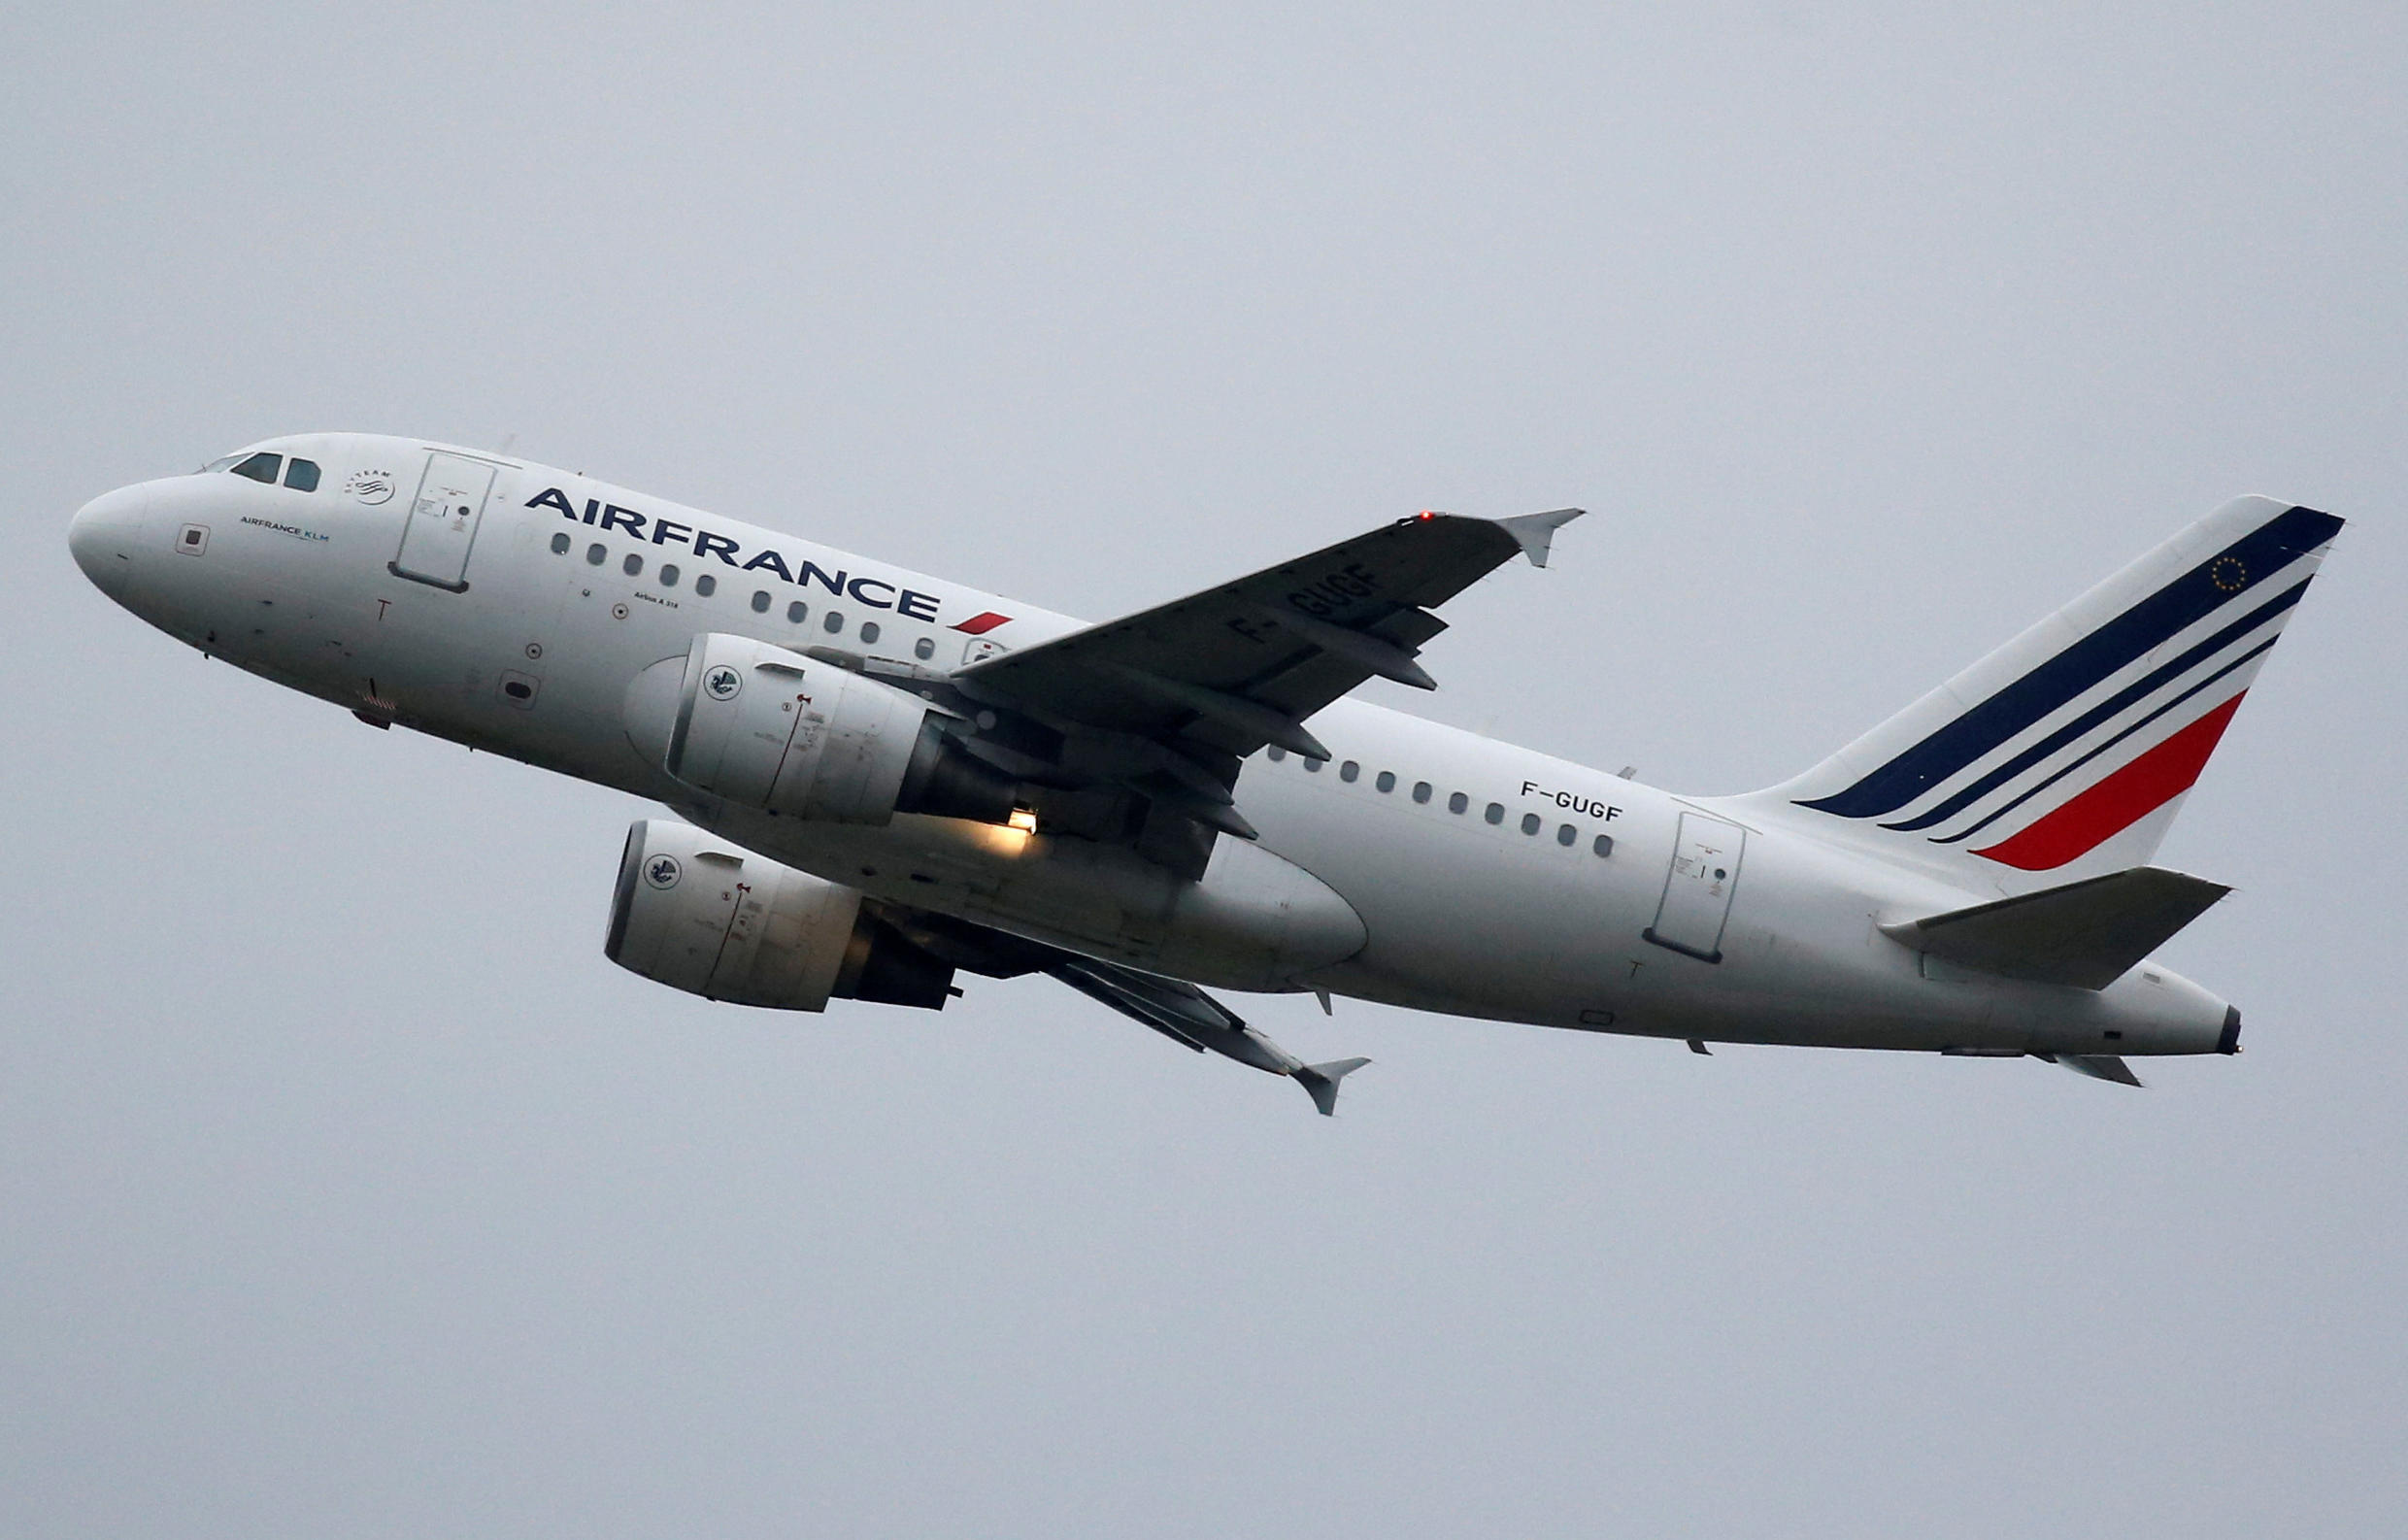 Air France is one of many airlines cancelling some services, but many carriers are operating nearly empty flights to protect their time slots.